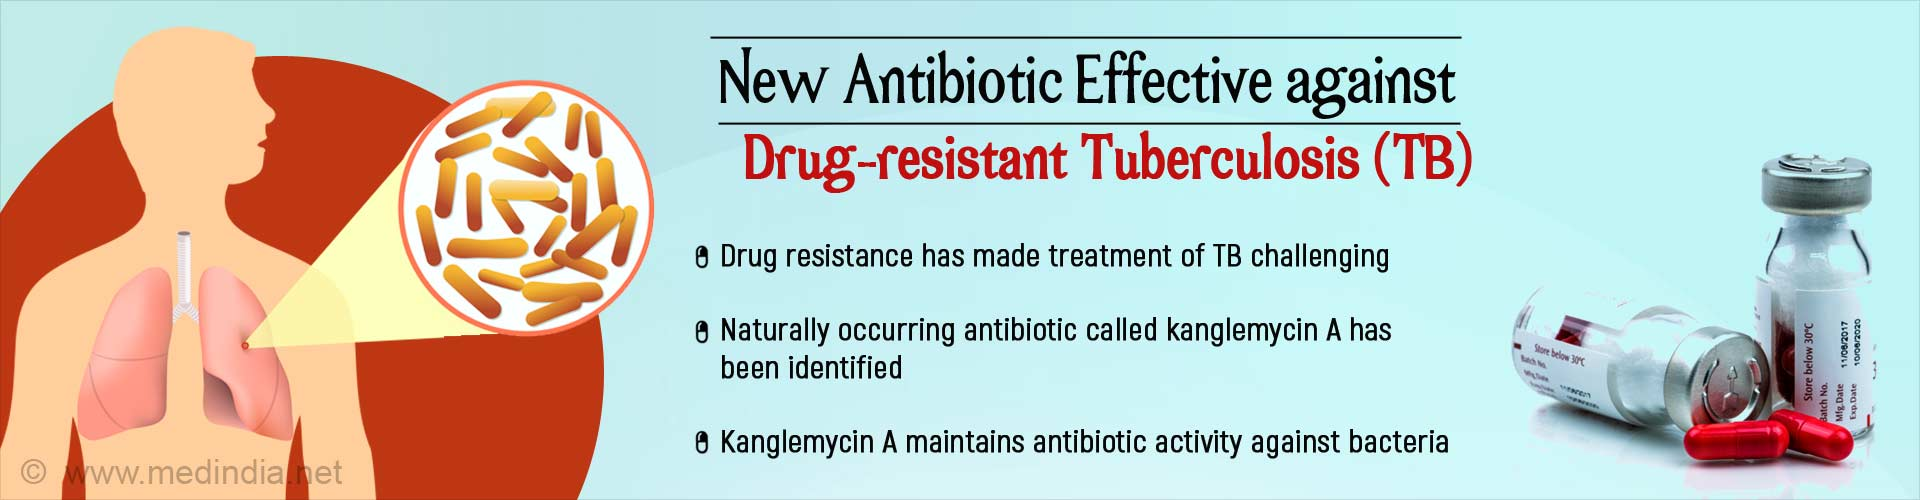 Naturally-occurring Antibiotic Could Fight Drug-resistant Tuberculosis